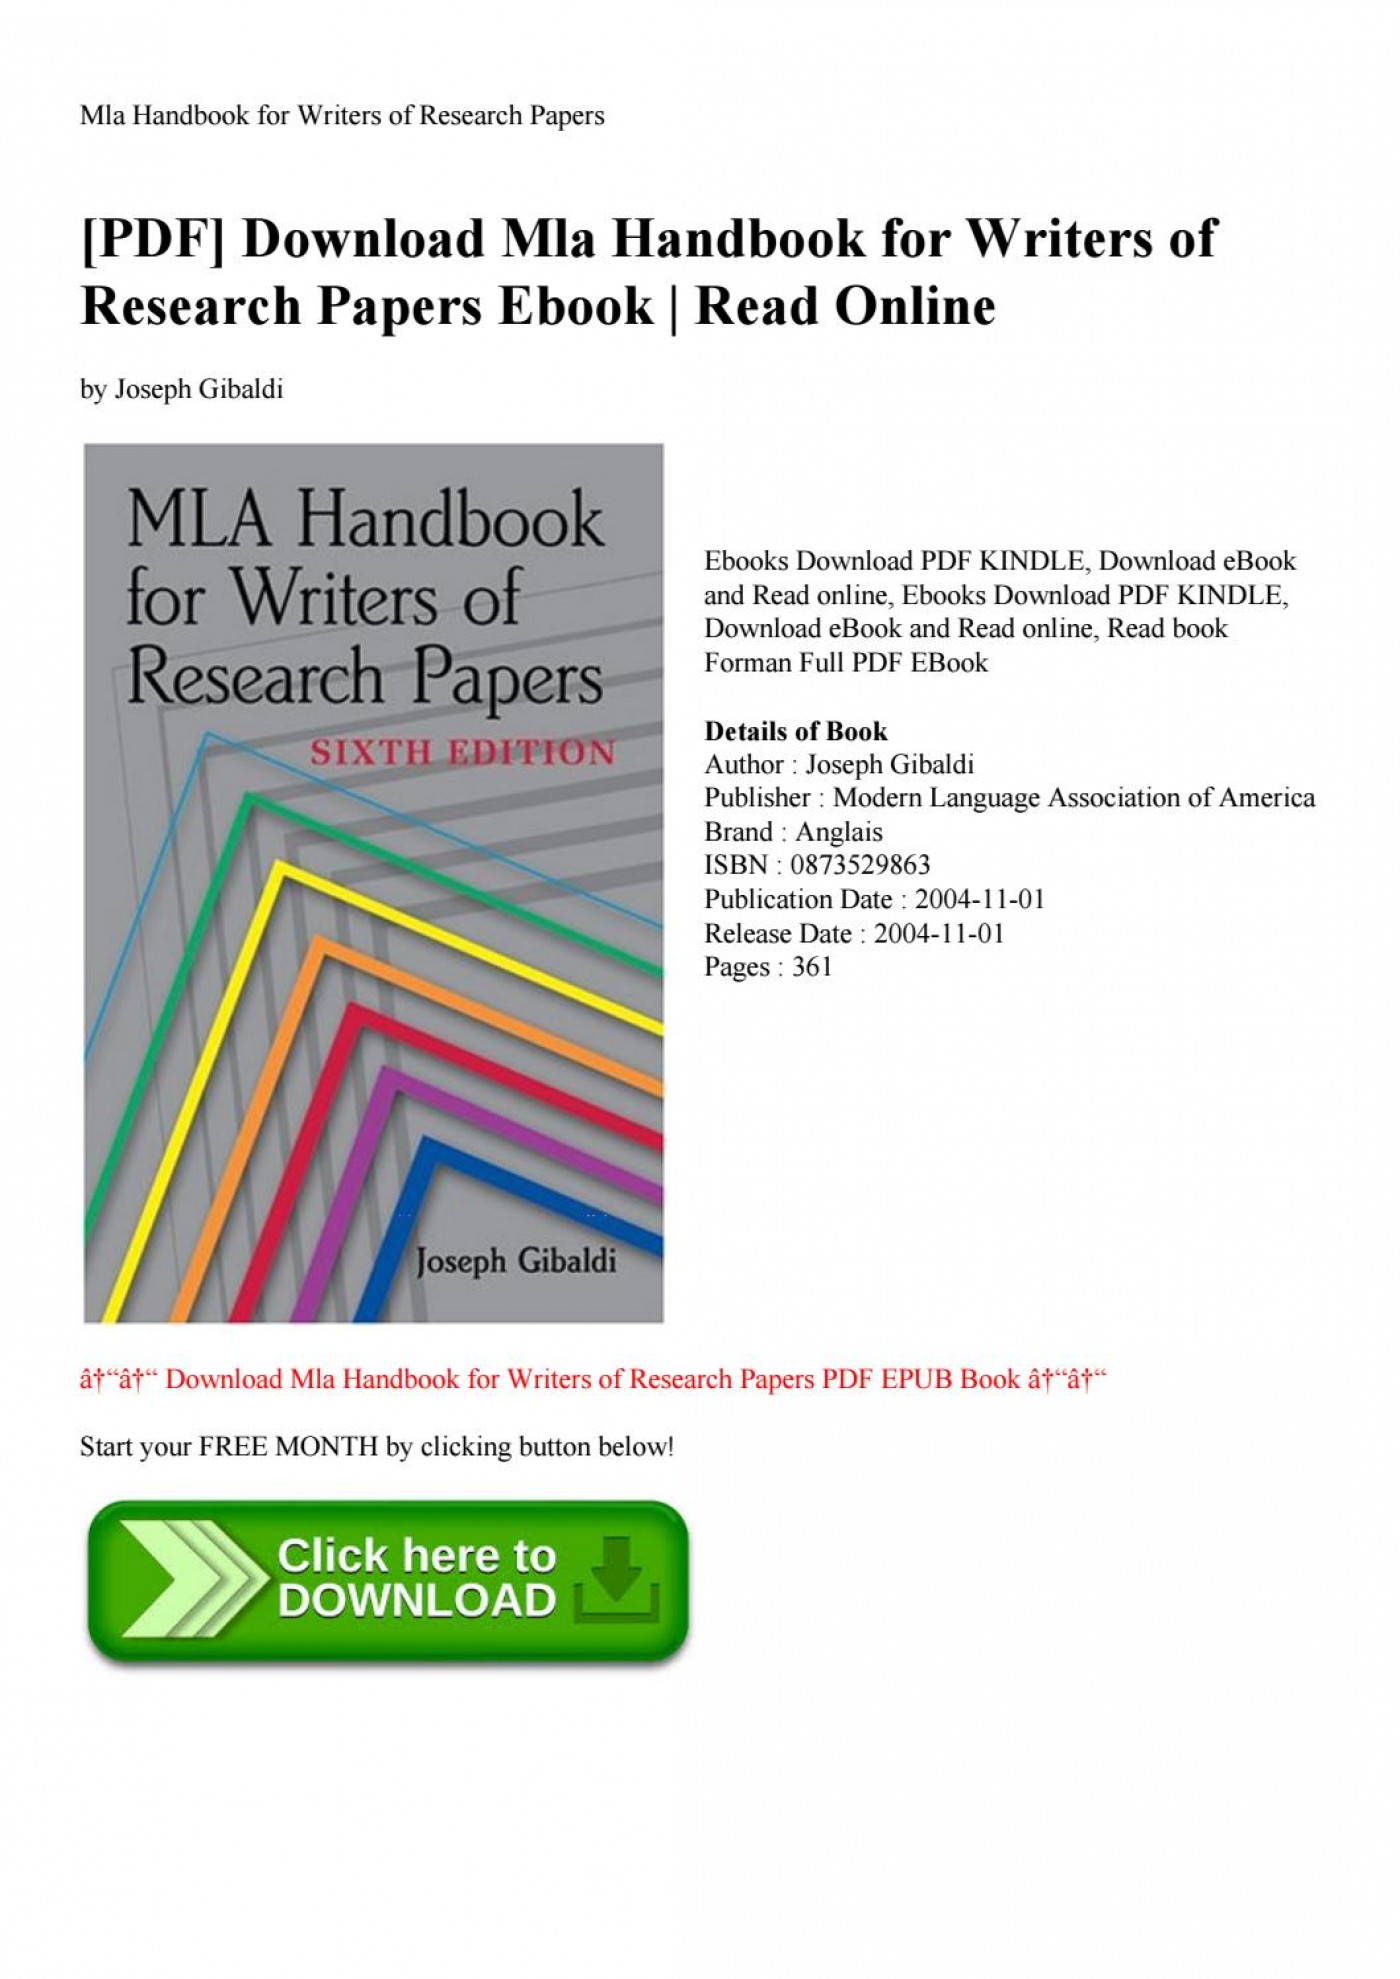 002 Mla Handbook For Writing Research Papers Pdf Paper Page 1 Beautiful Writers Of 5th Edition 7th Free Download 1400